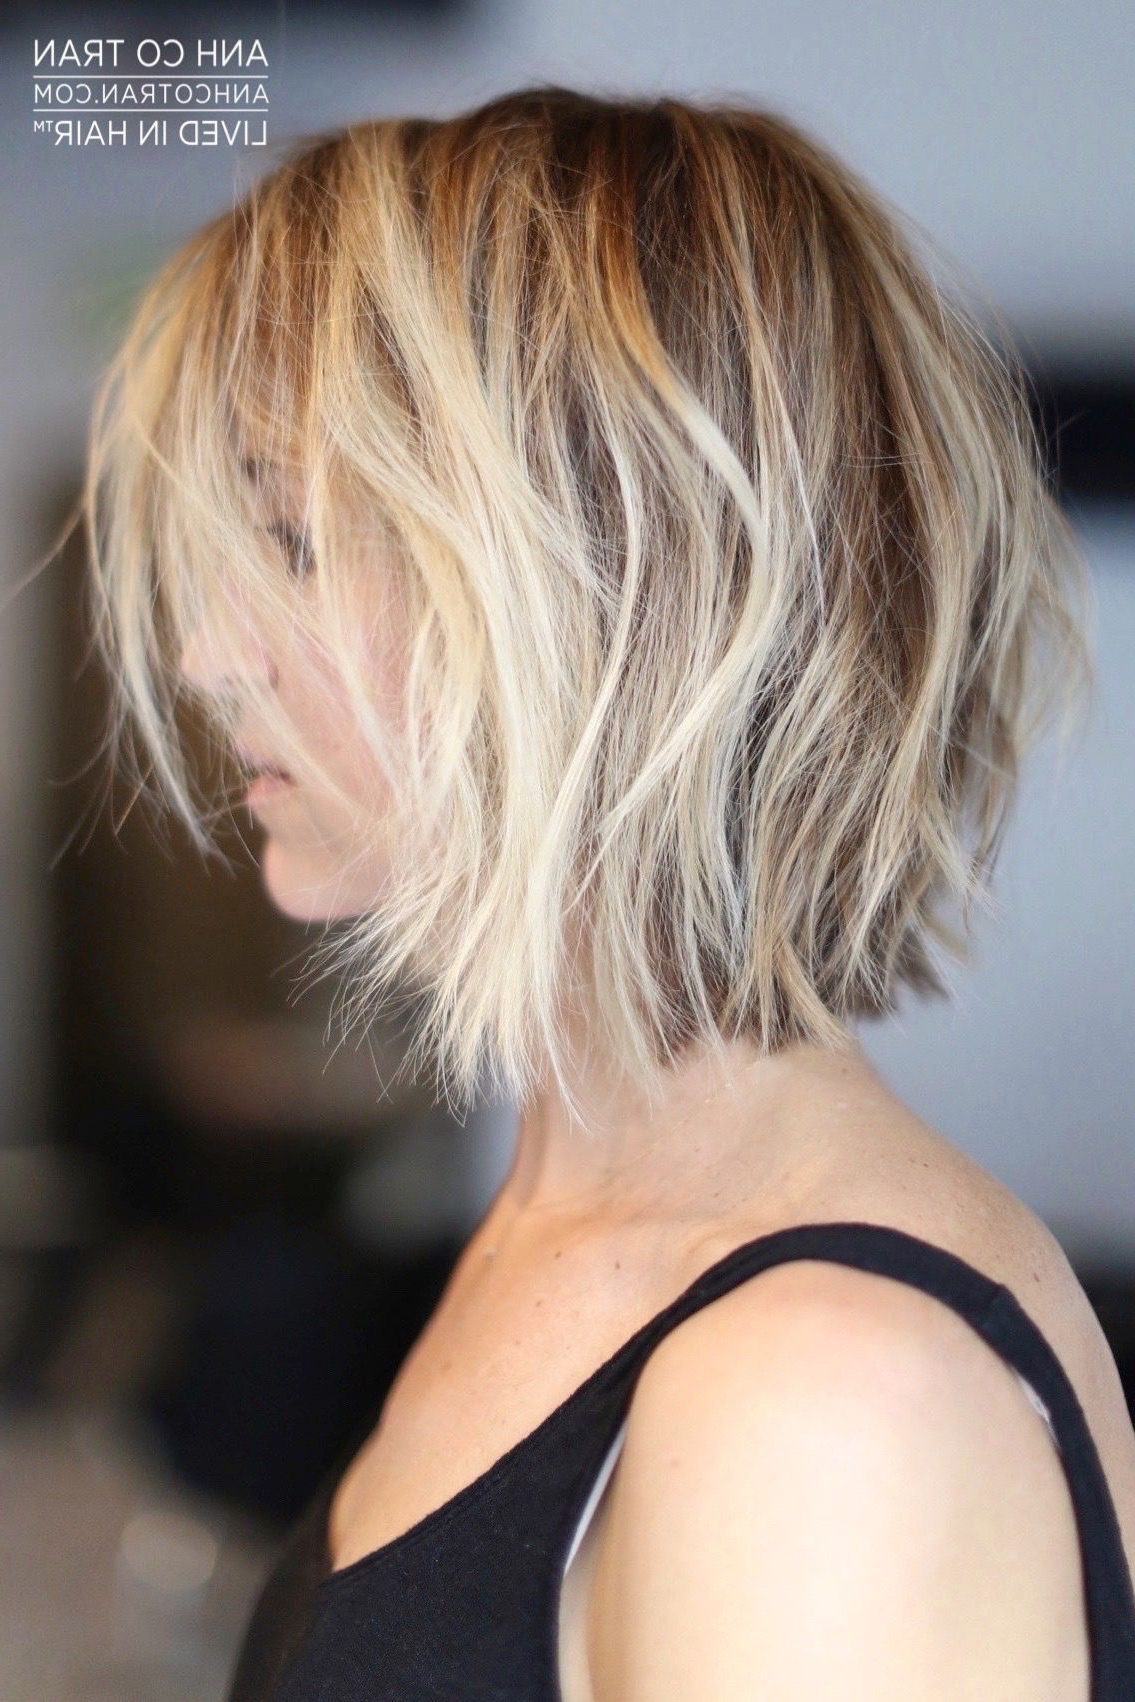 My Current Style Wouldn't Require Too Much Modification To Do This For Dynamic Tousled Blonde Bob Hairstyles With Dark Underlayer (View 17 of 20)